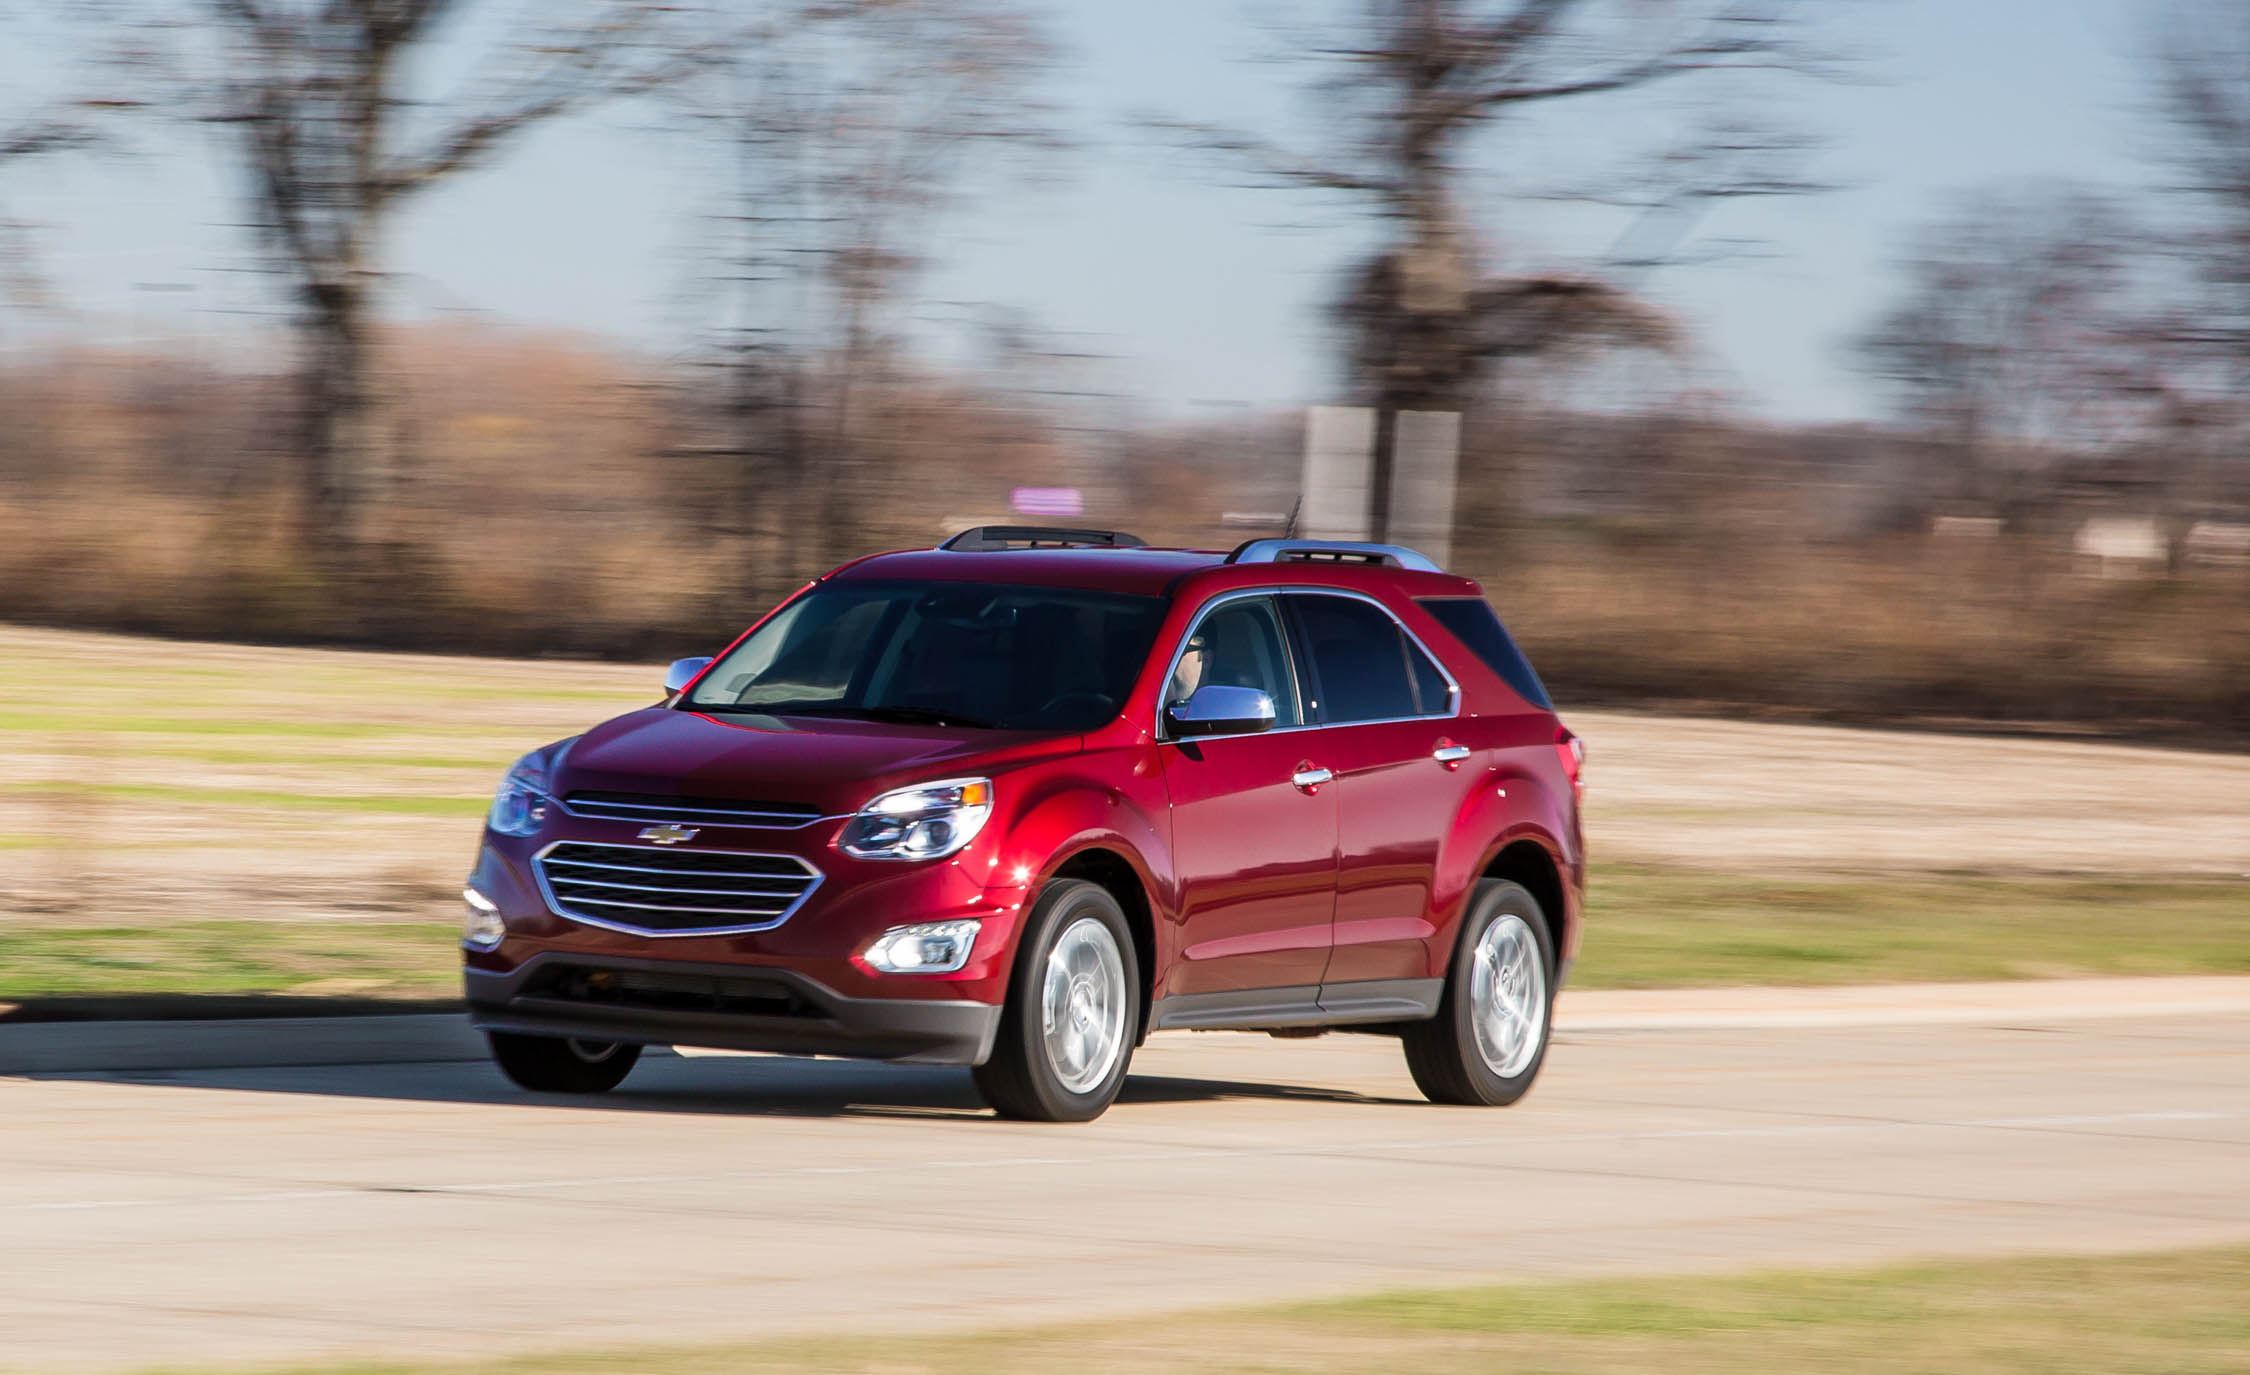 2016 Chevrolet Equinox LTZ Test Front and Side View